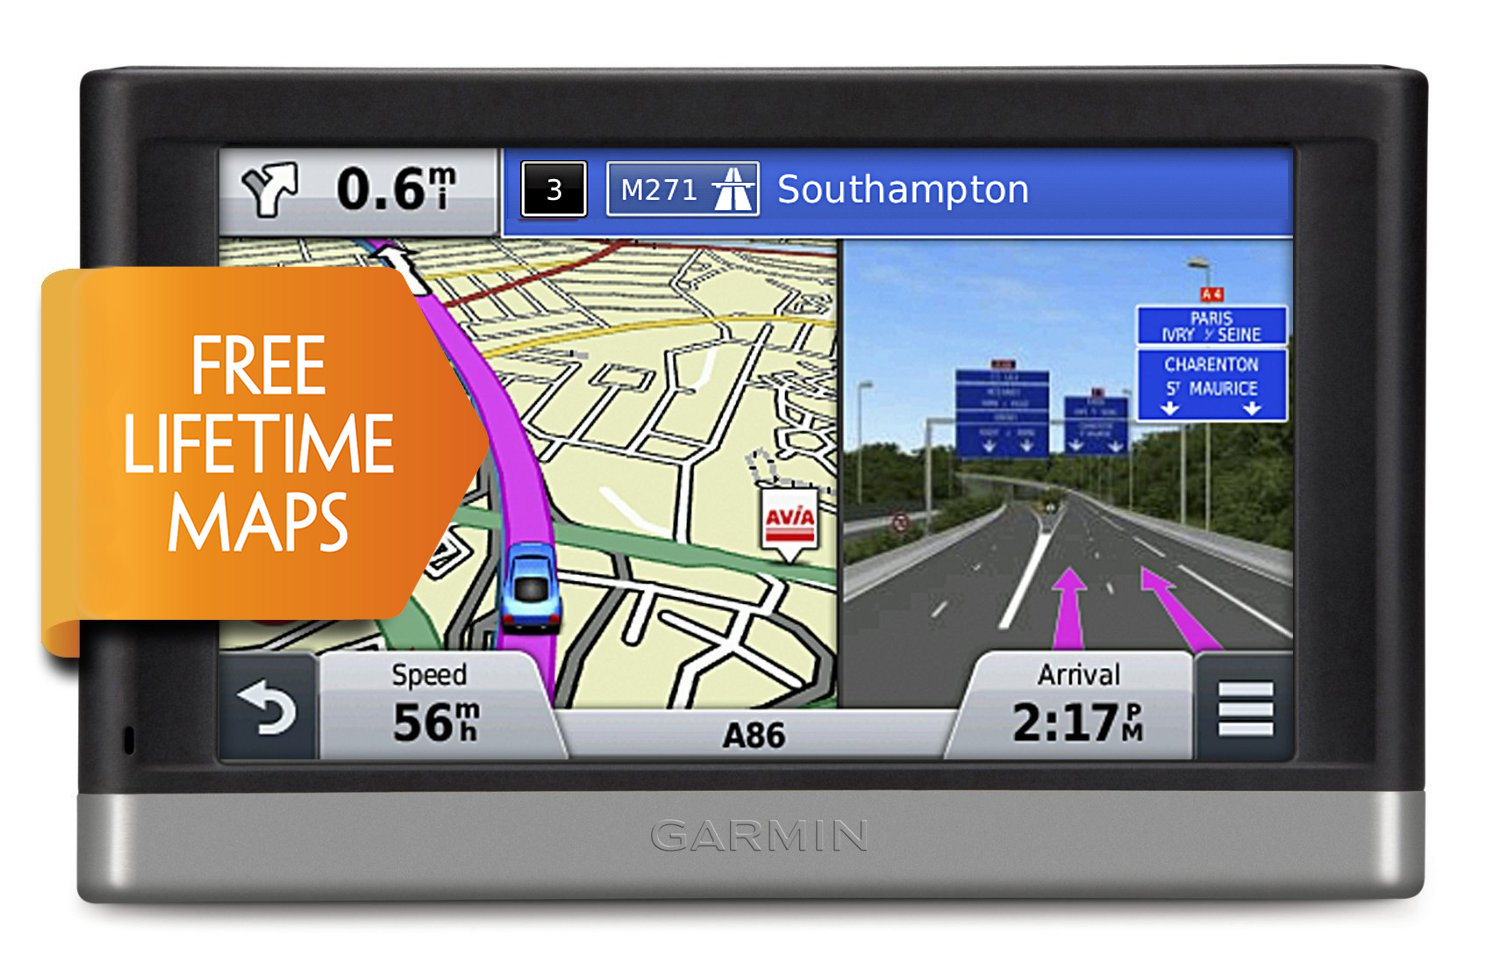 Garmin nuvi 2597 review uk dating. dating a guy who smokes a lot of weed.